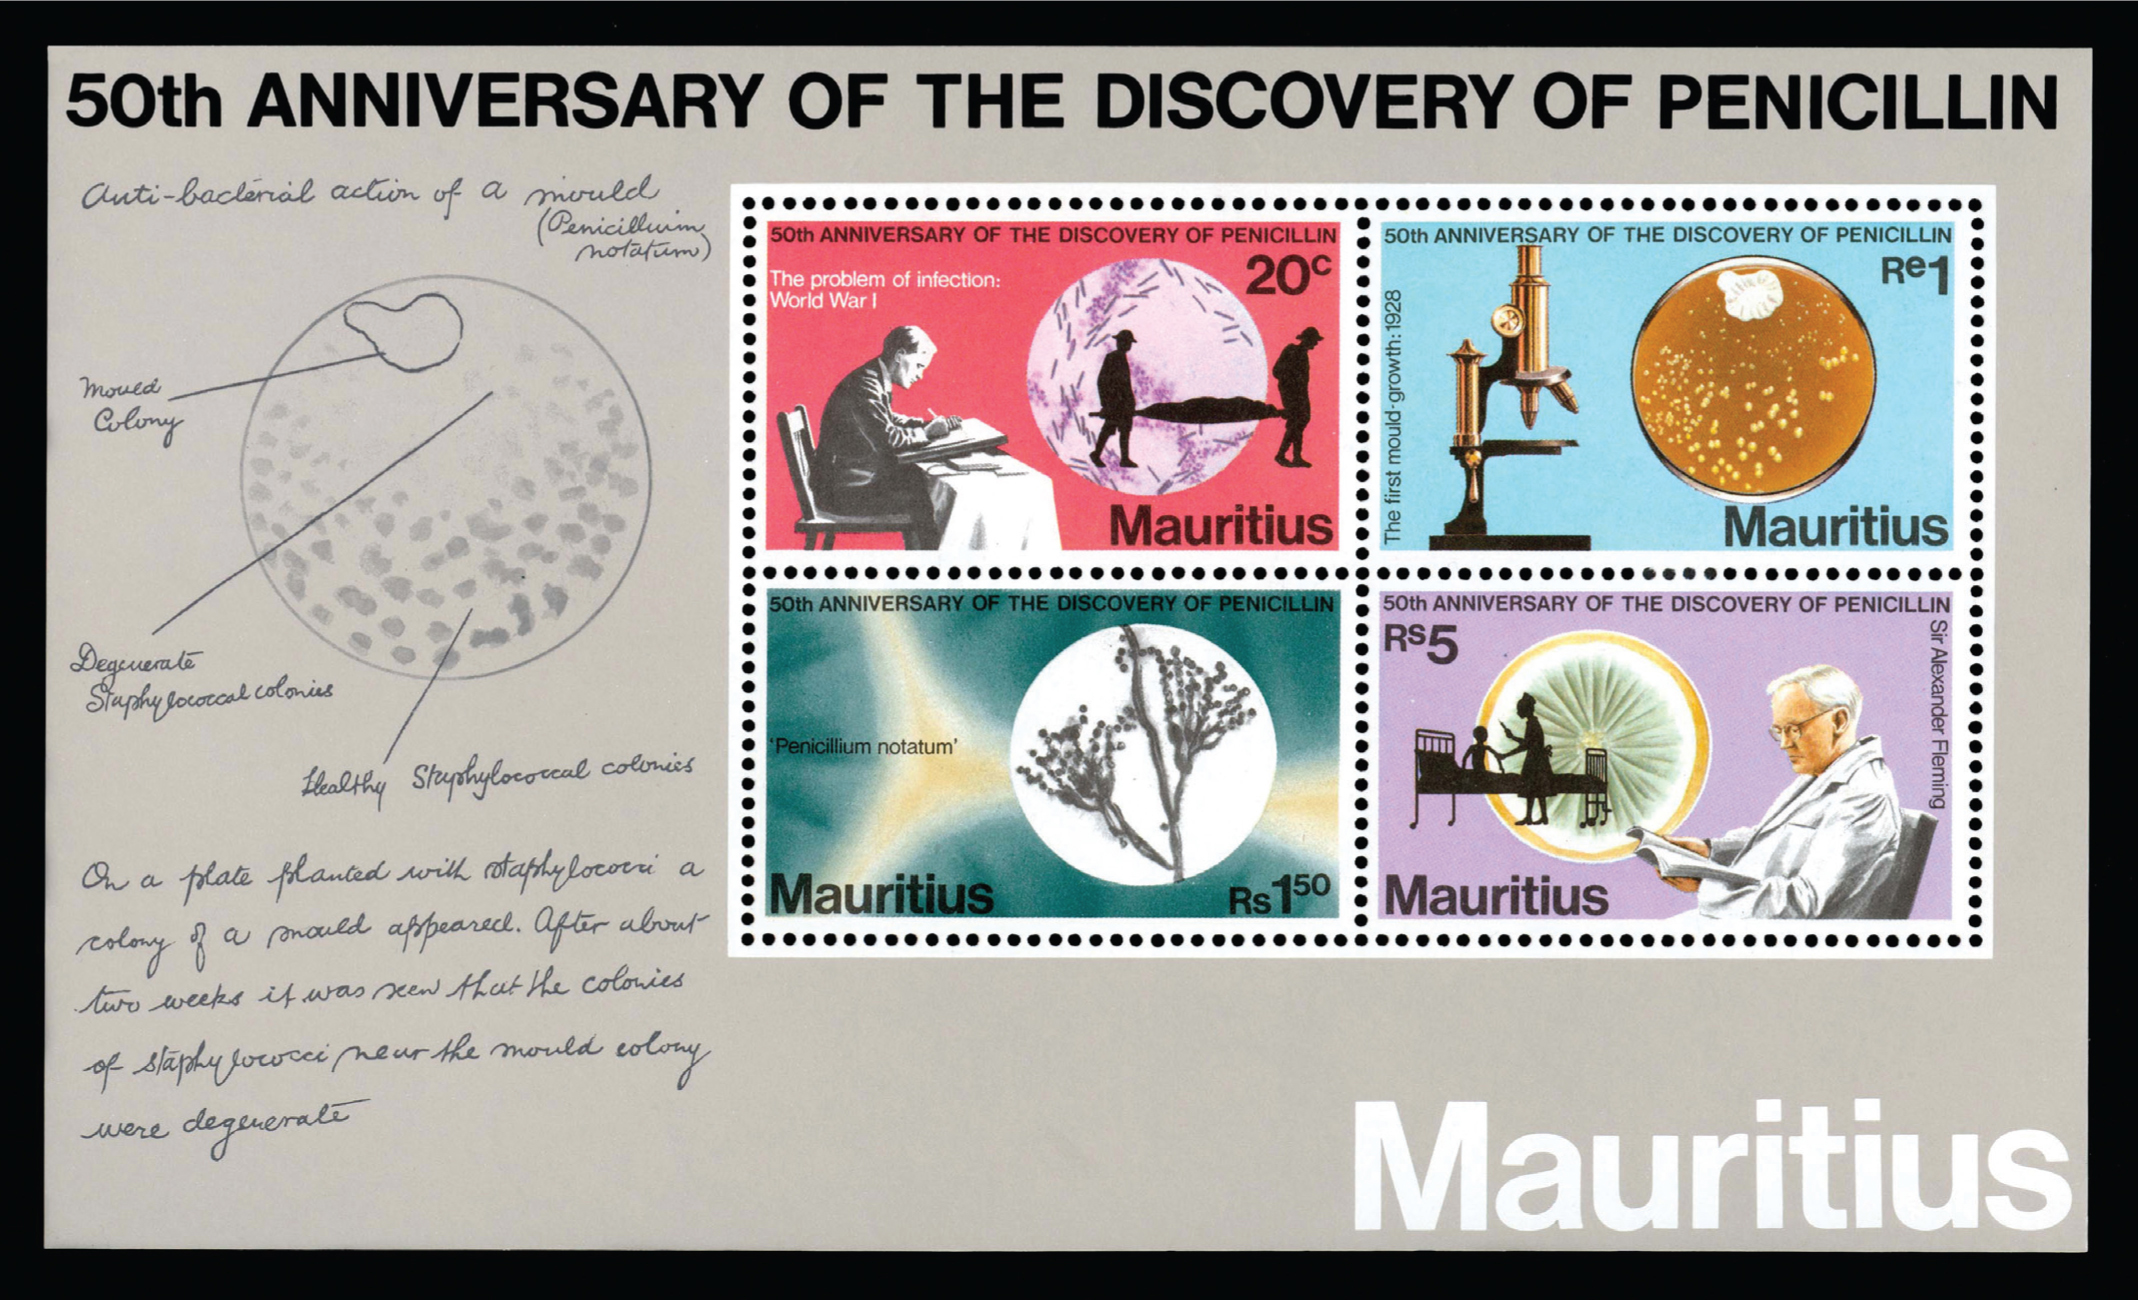 A 1978 souvenir sheet from Mauritius that celebrates the 50th anniversary of Sir Alexander Fleming's discovery of penicillin.Image courtesy of Stanford T Shulman, MD.